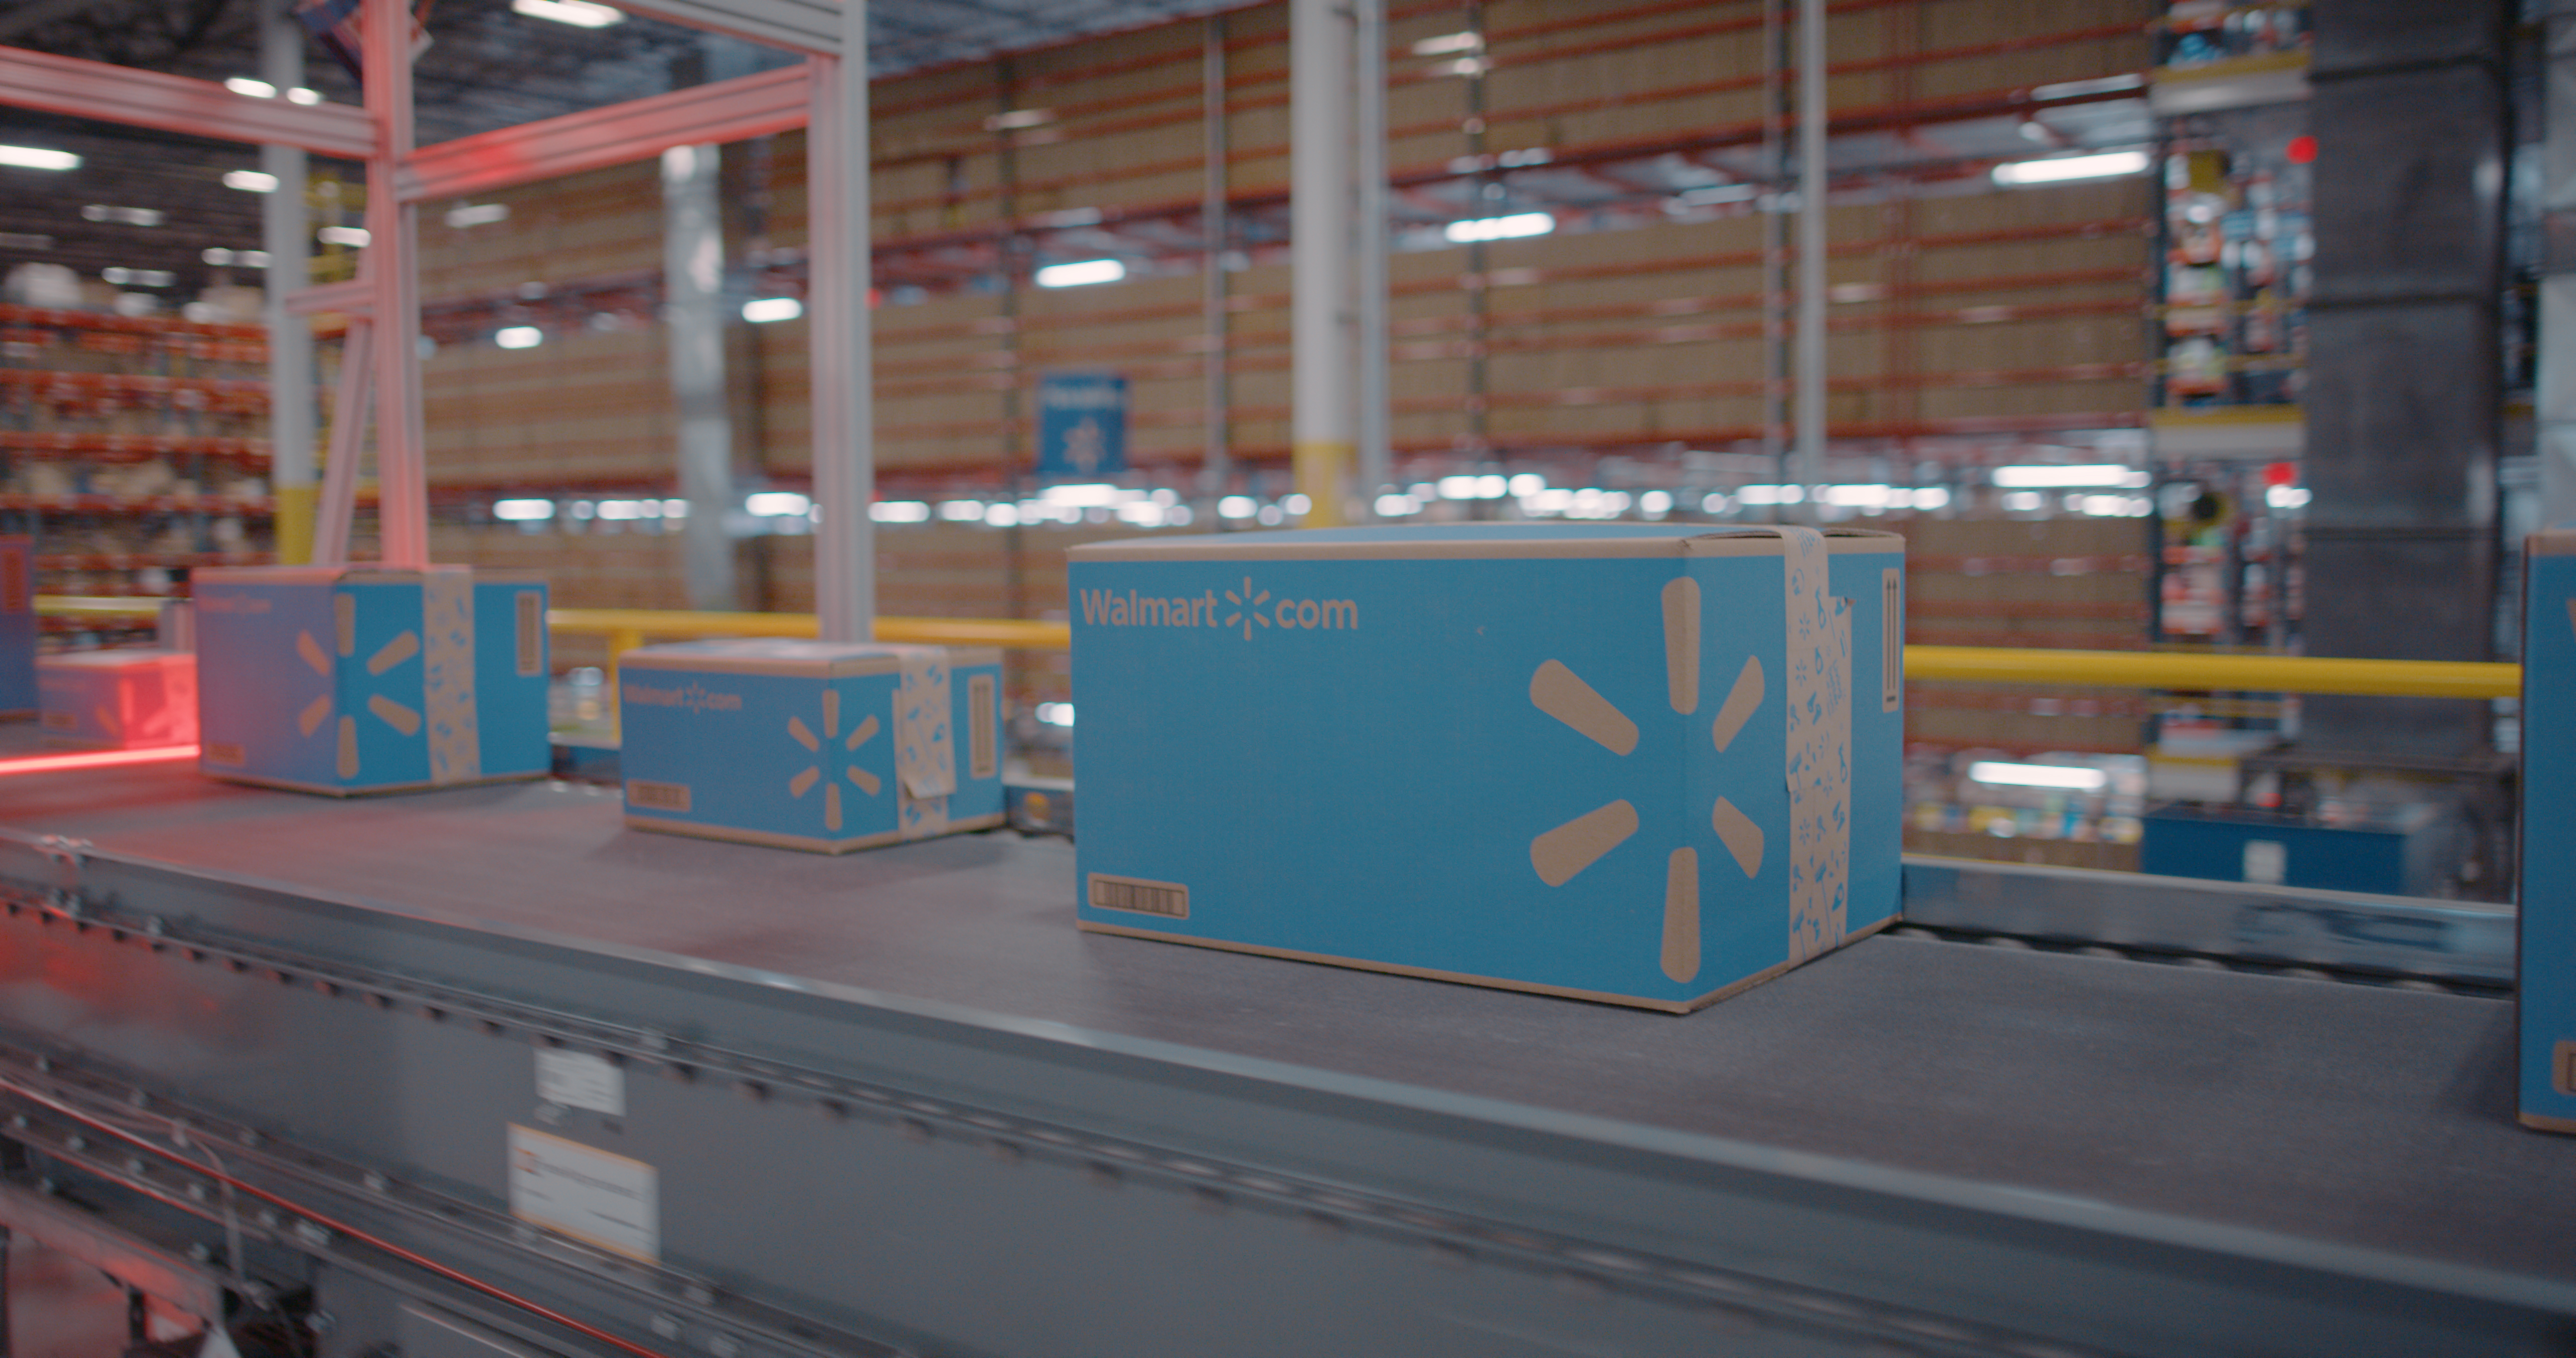 Walmart Fulfillment Center, WFS